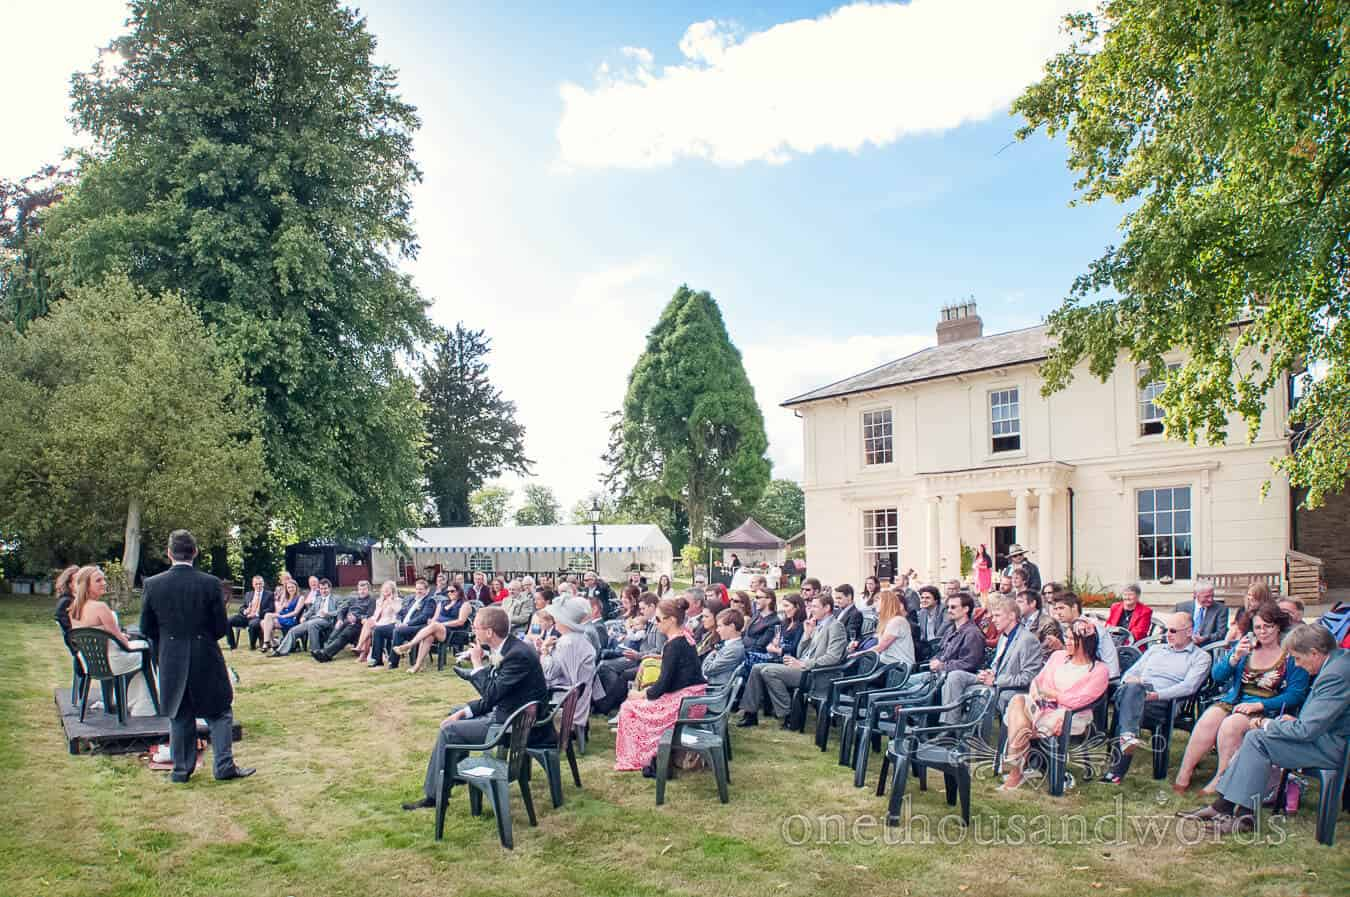 Countryside Wedding Speeches at home in country house gardens